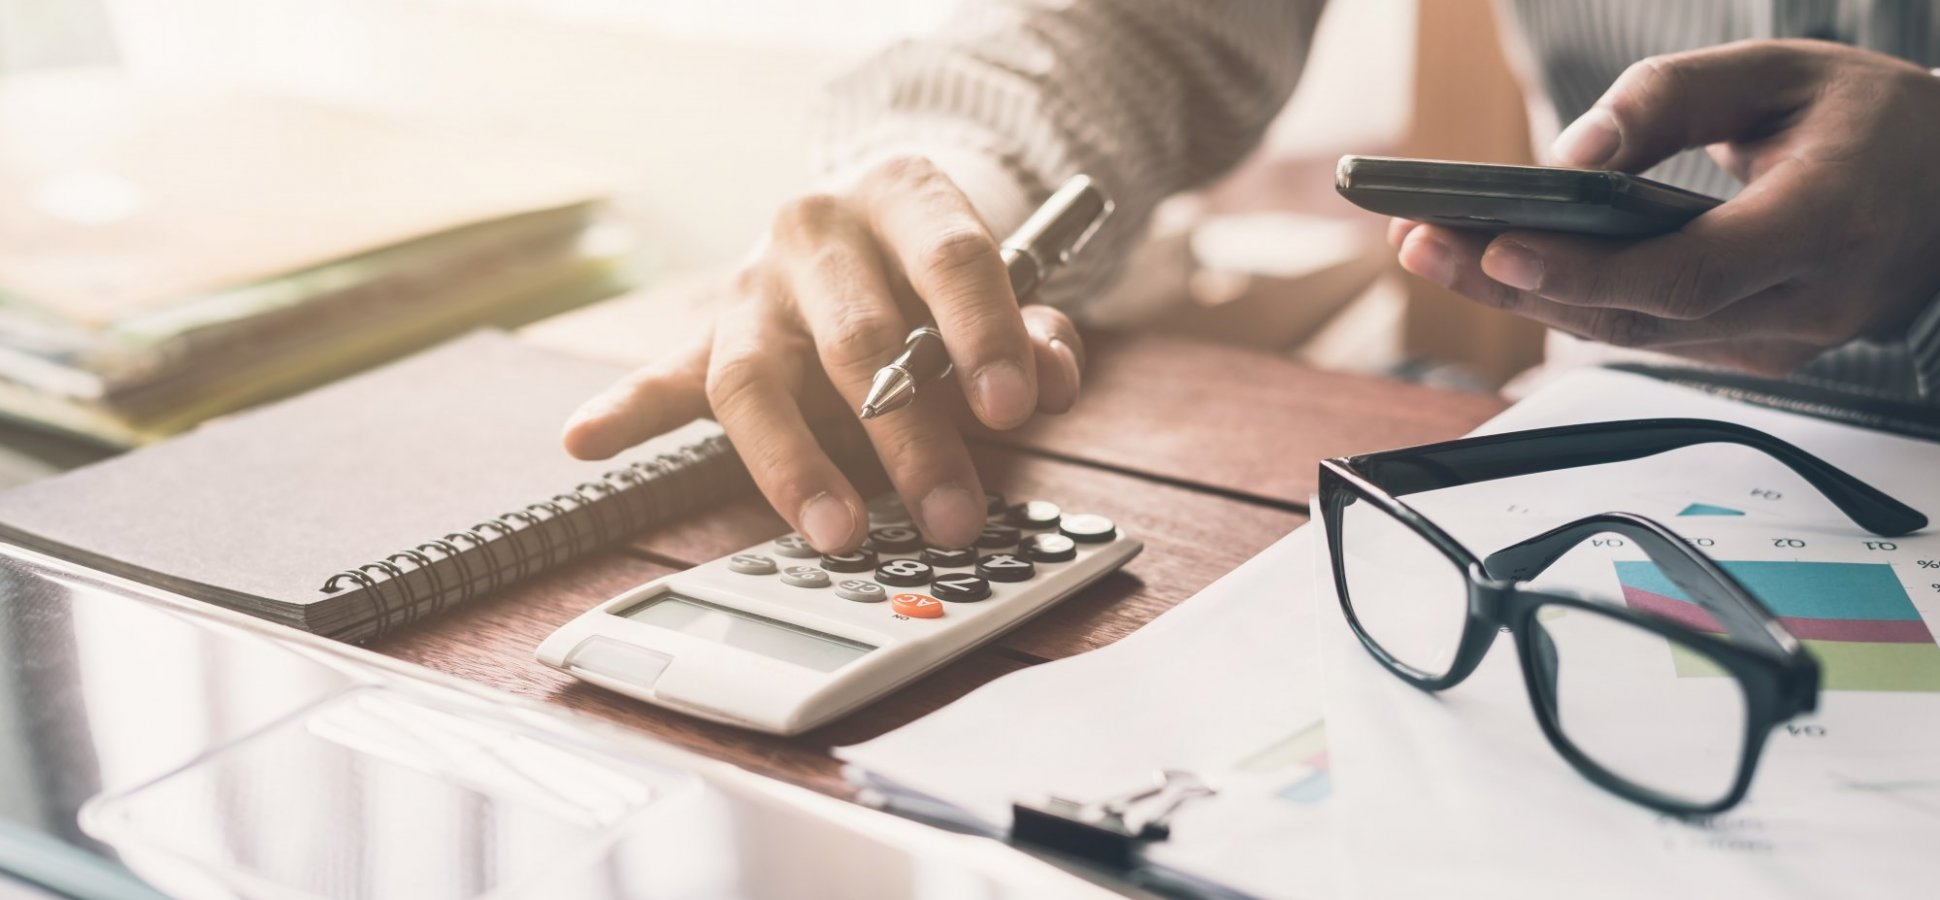 Self Employed? Here's How To Simplify Your Finances So You Can Get Back To Doing What You Love